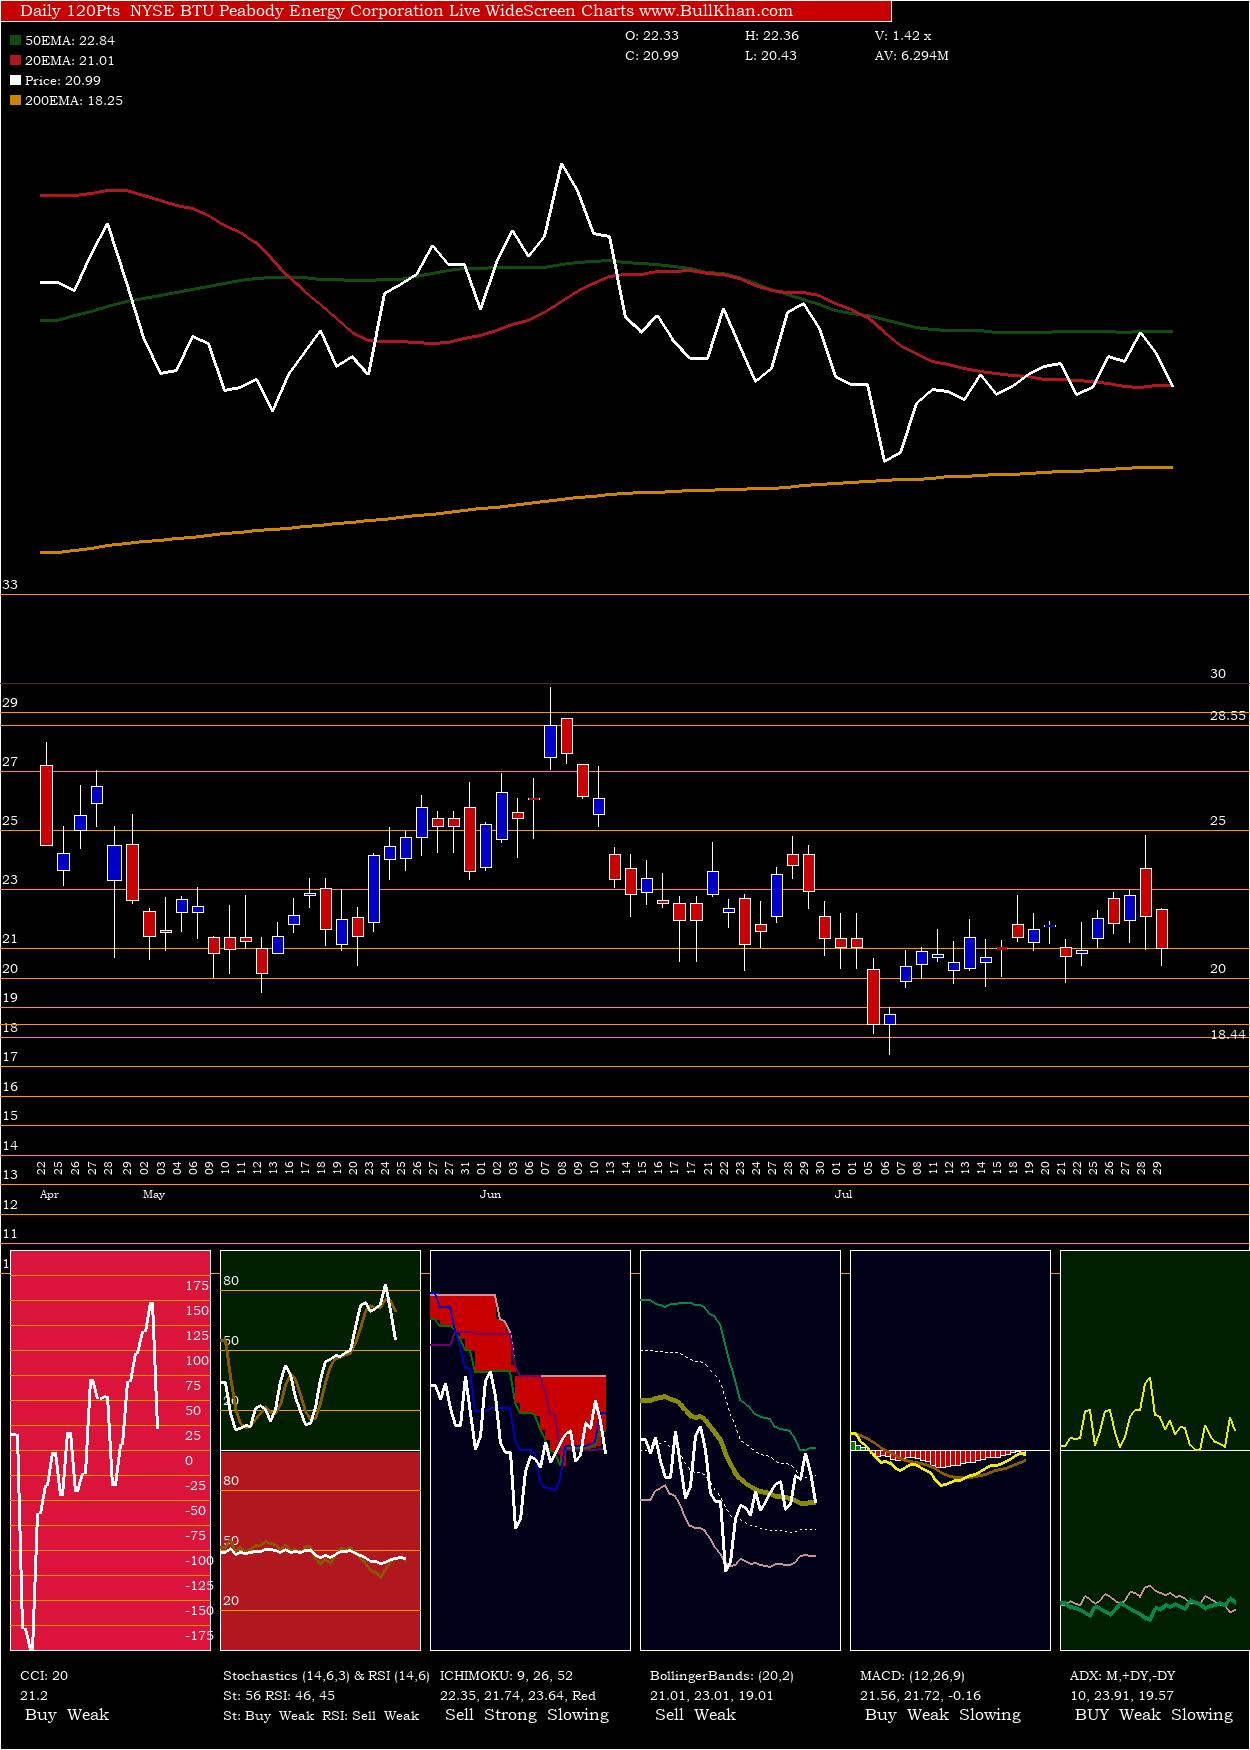 Peabody Energy charts and indicators